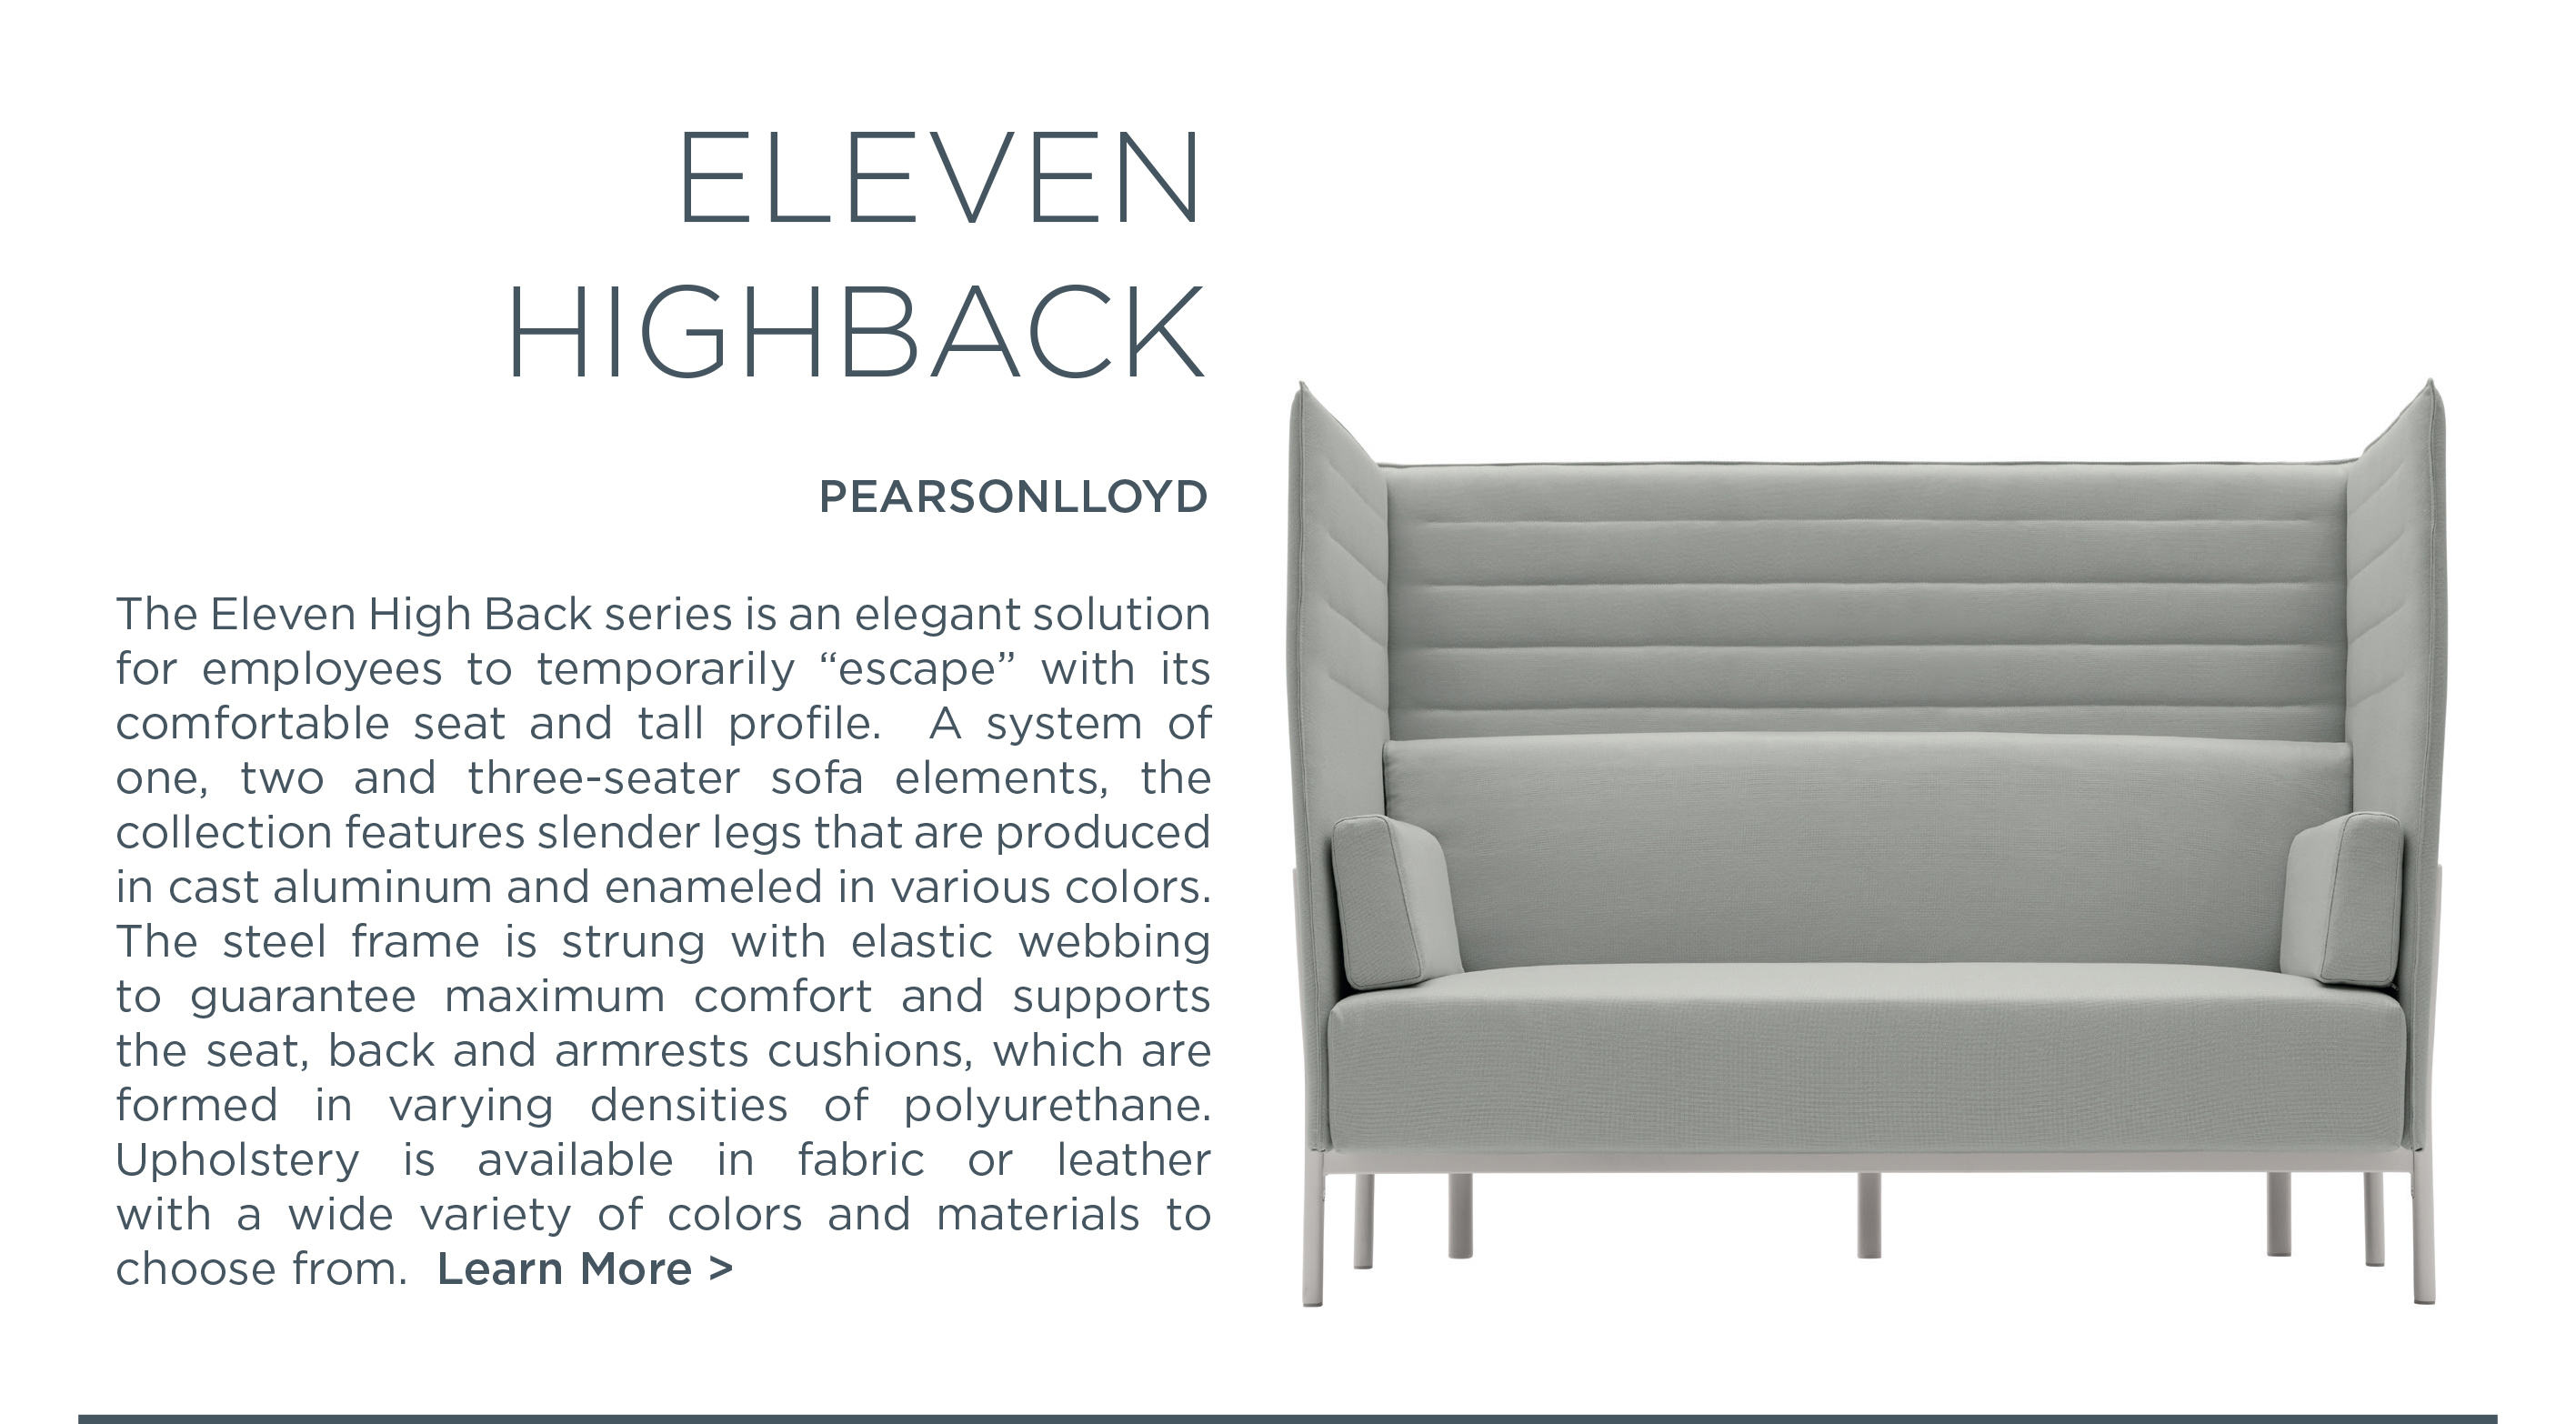 Eleven high back sofa series pearson lloyd alias suite ny suite new york